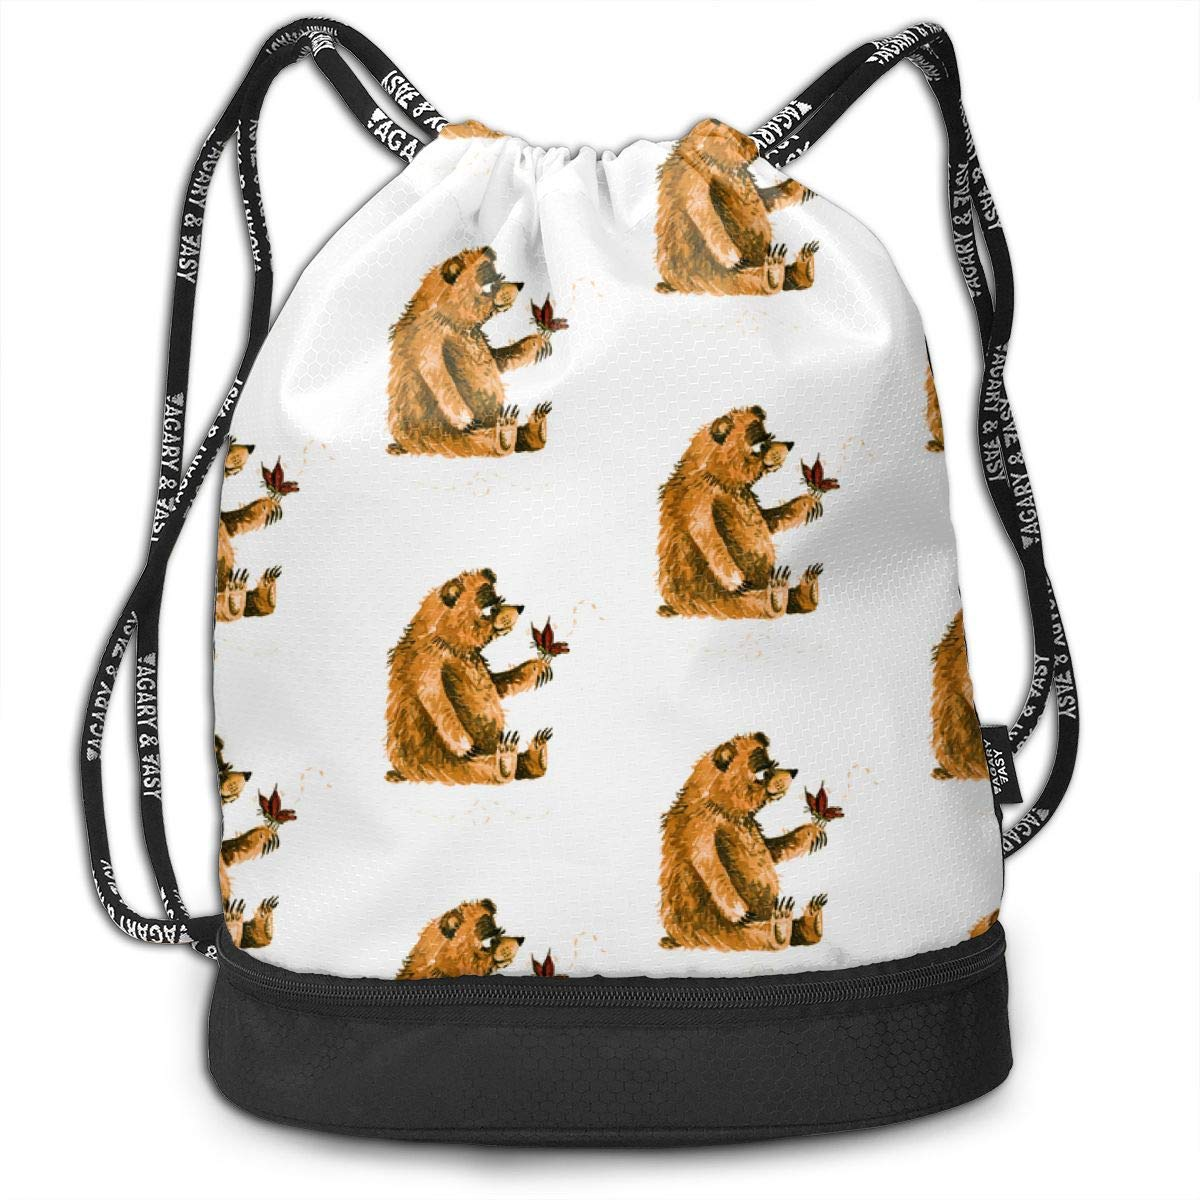 Bear Meets New Friend Drawstring Backpack Sports Athletic Gym Cinch Sack String Storage Bags for Hiking Travel Beach